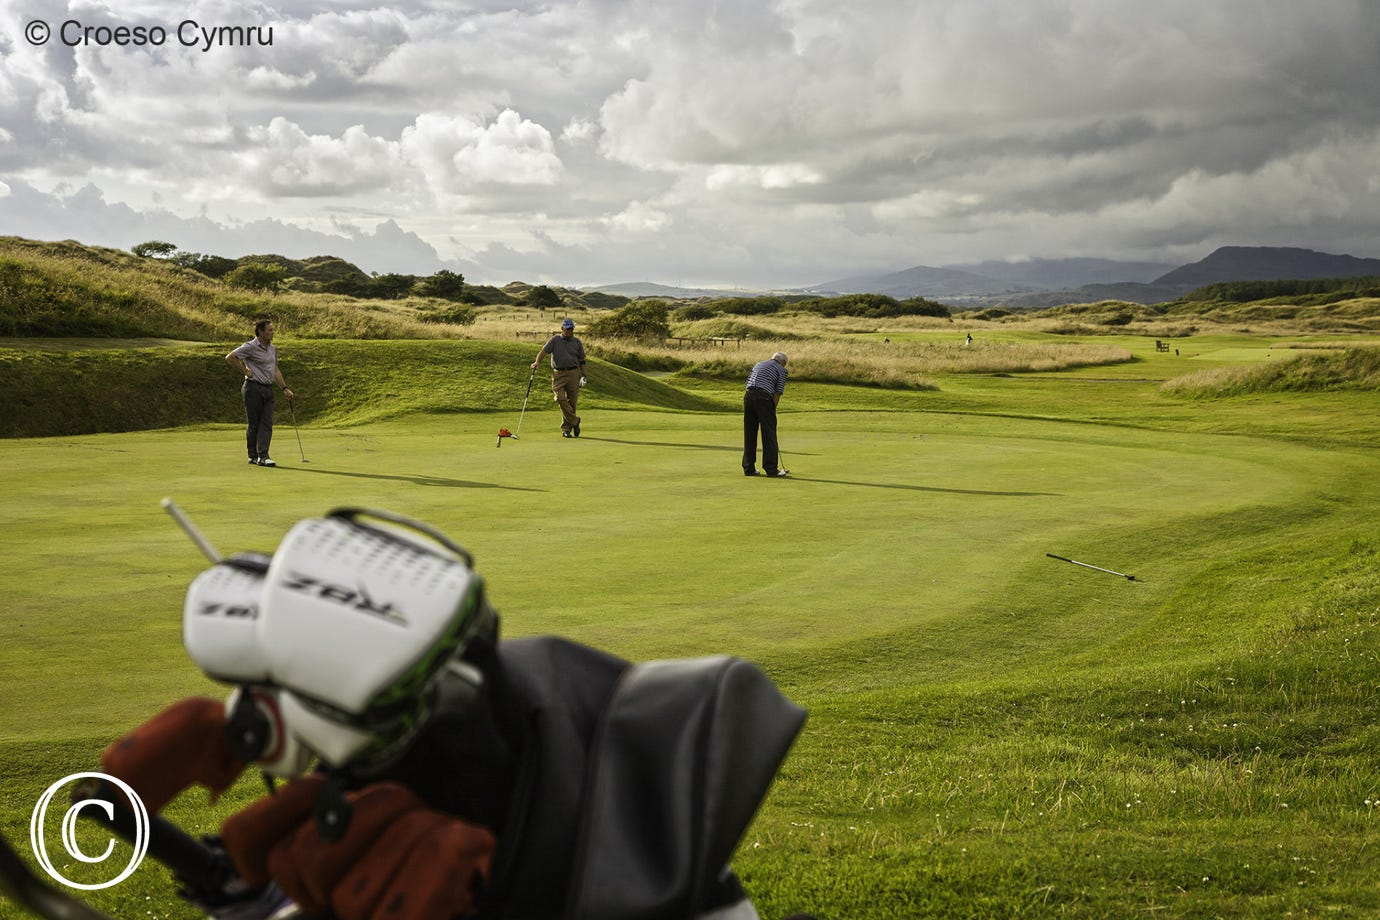 Enjoy a round of golf at Royal St. David's 18 hole golf course